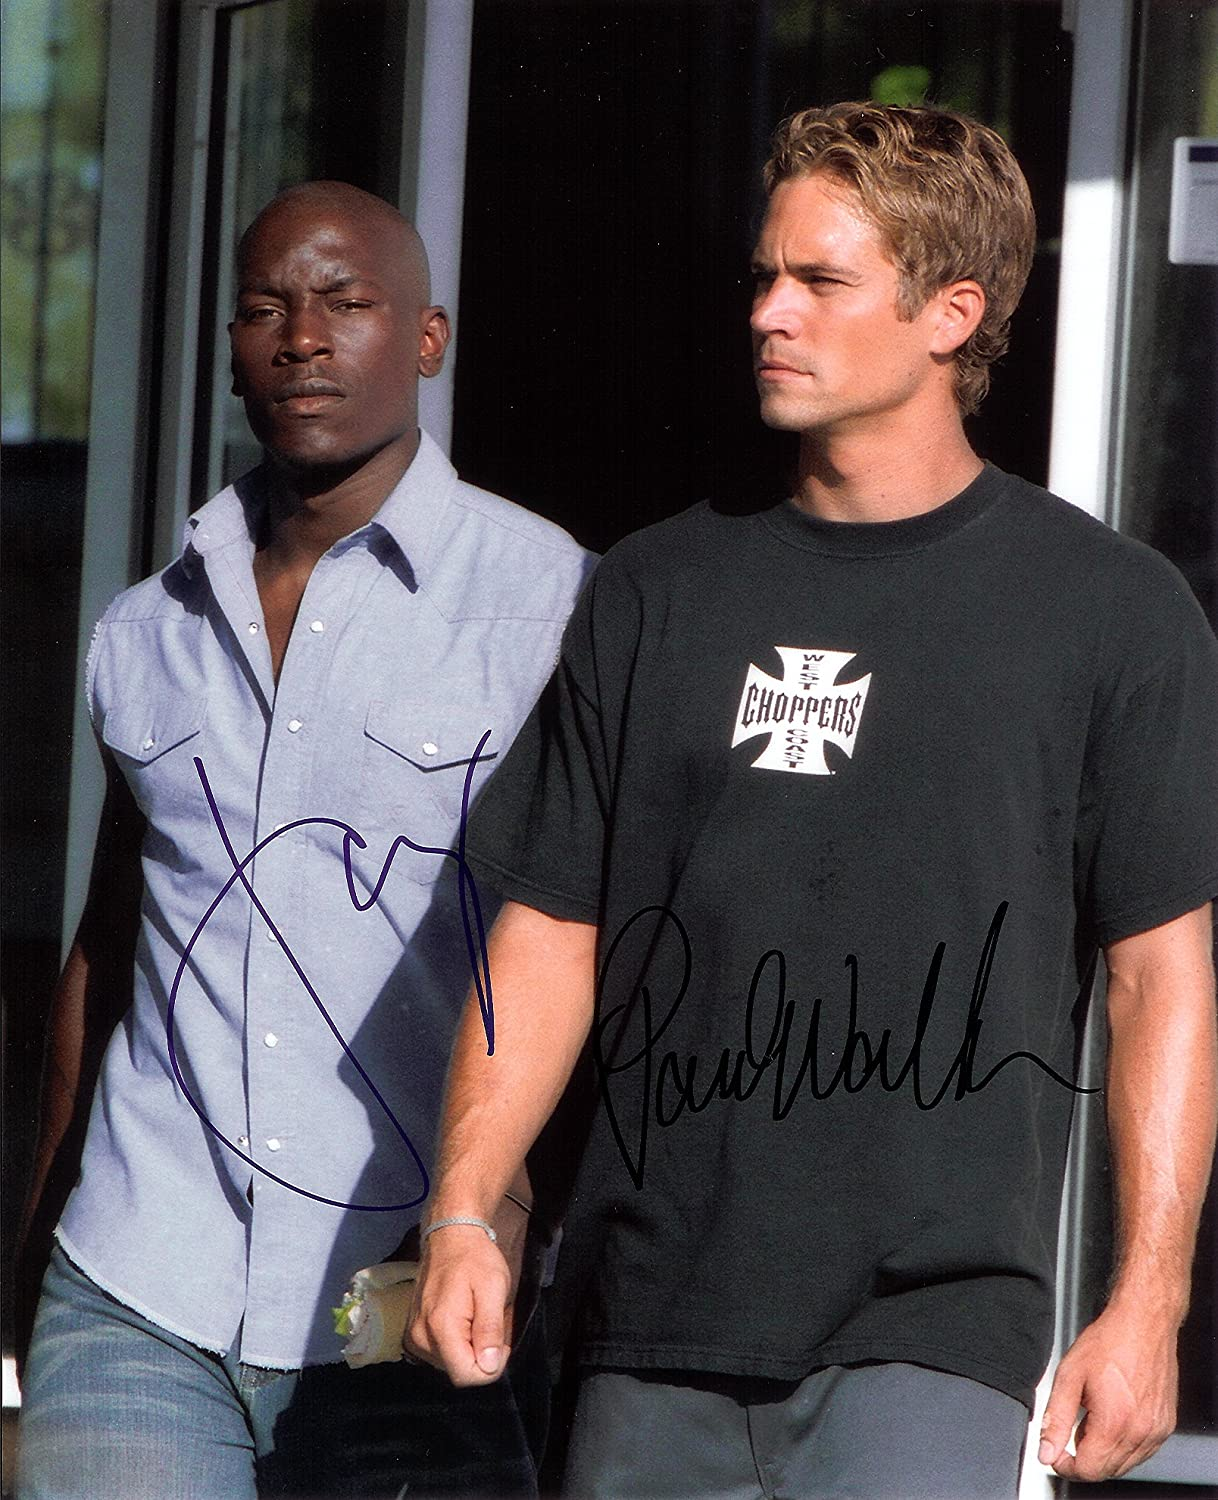 Fast & Furious with Paul Walker Signed Autographed 8 X 10 RP Photo - Mint Condition got7 got 7 mark autographed signed photo flight log arrival 6 inches new korean freeshipping 03 2017